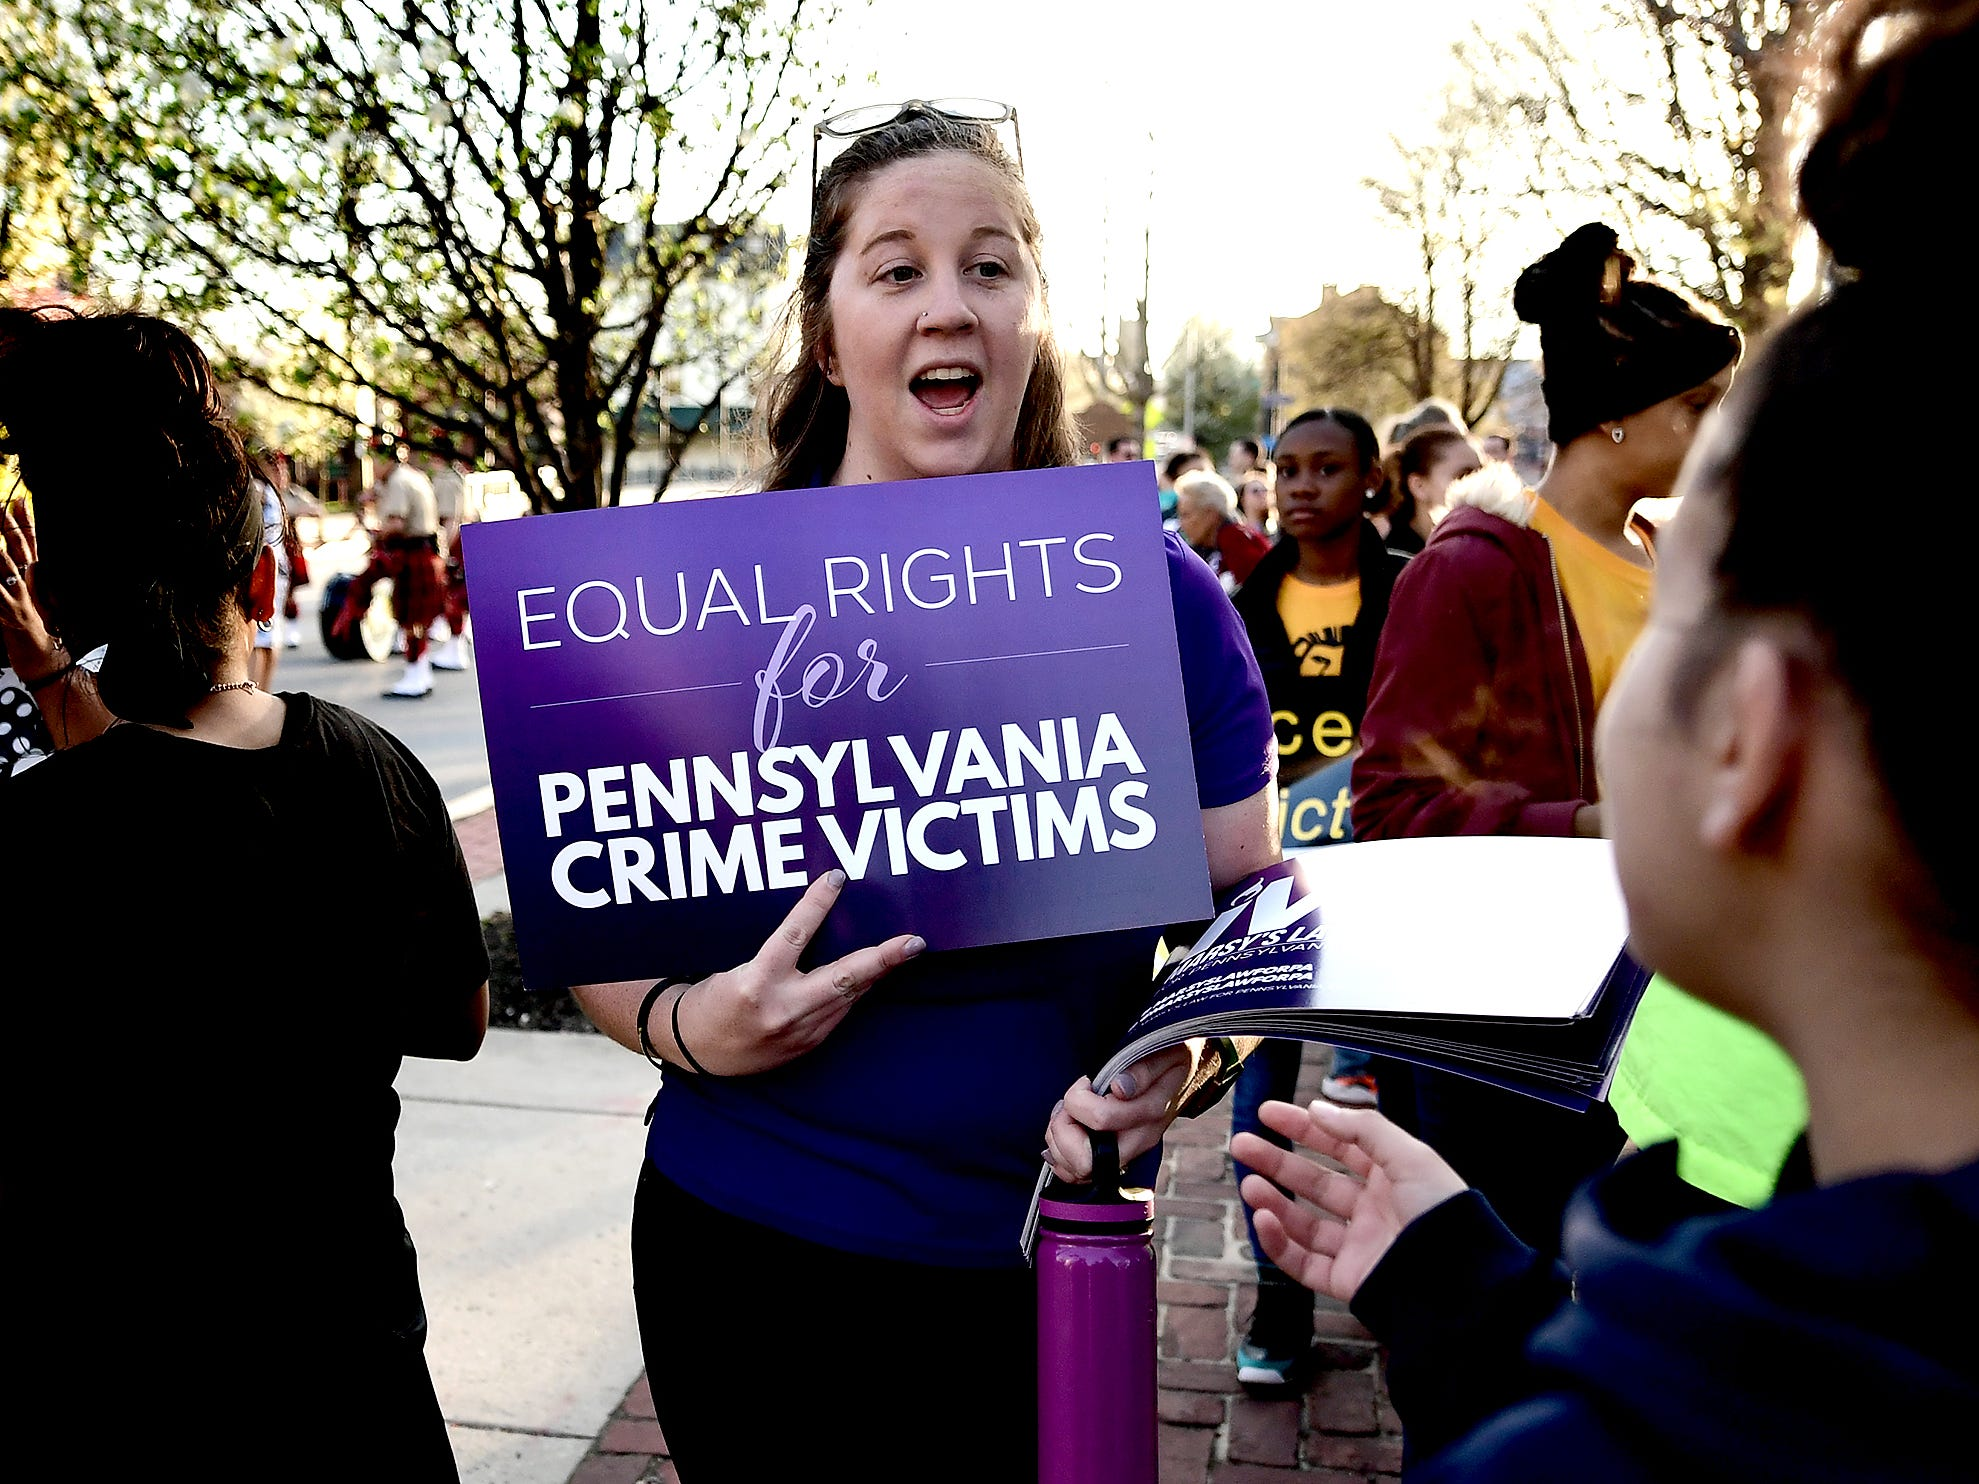 Becca Zelmer, of Marsy's Law for Pennsylvania, passes out signs in support of the bill during a gathering  at the Colonial Courthouse during the 33rd annual Crime Victims' Rights March and Candlelight Vigil Tuesday, April 9, 2019. Participants gathered at the courthouse for a presentation before marching to Trinity United Church of Christ for a ceremony and candlelight vigil. The York County Victims' Rights Coalition sponsored the event. Bill Kalina photo